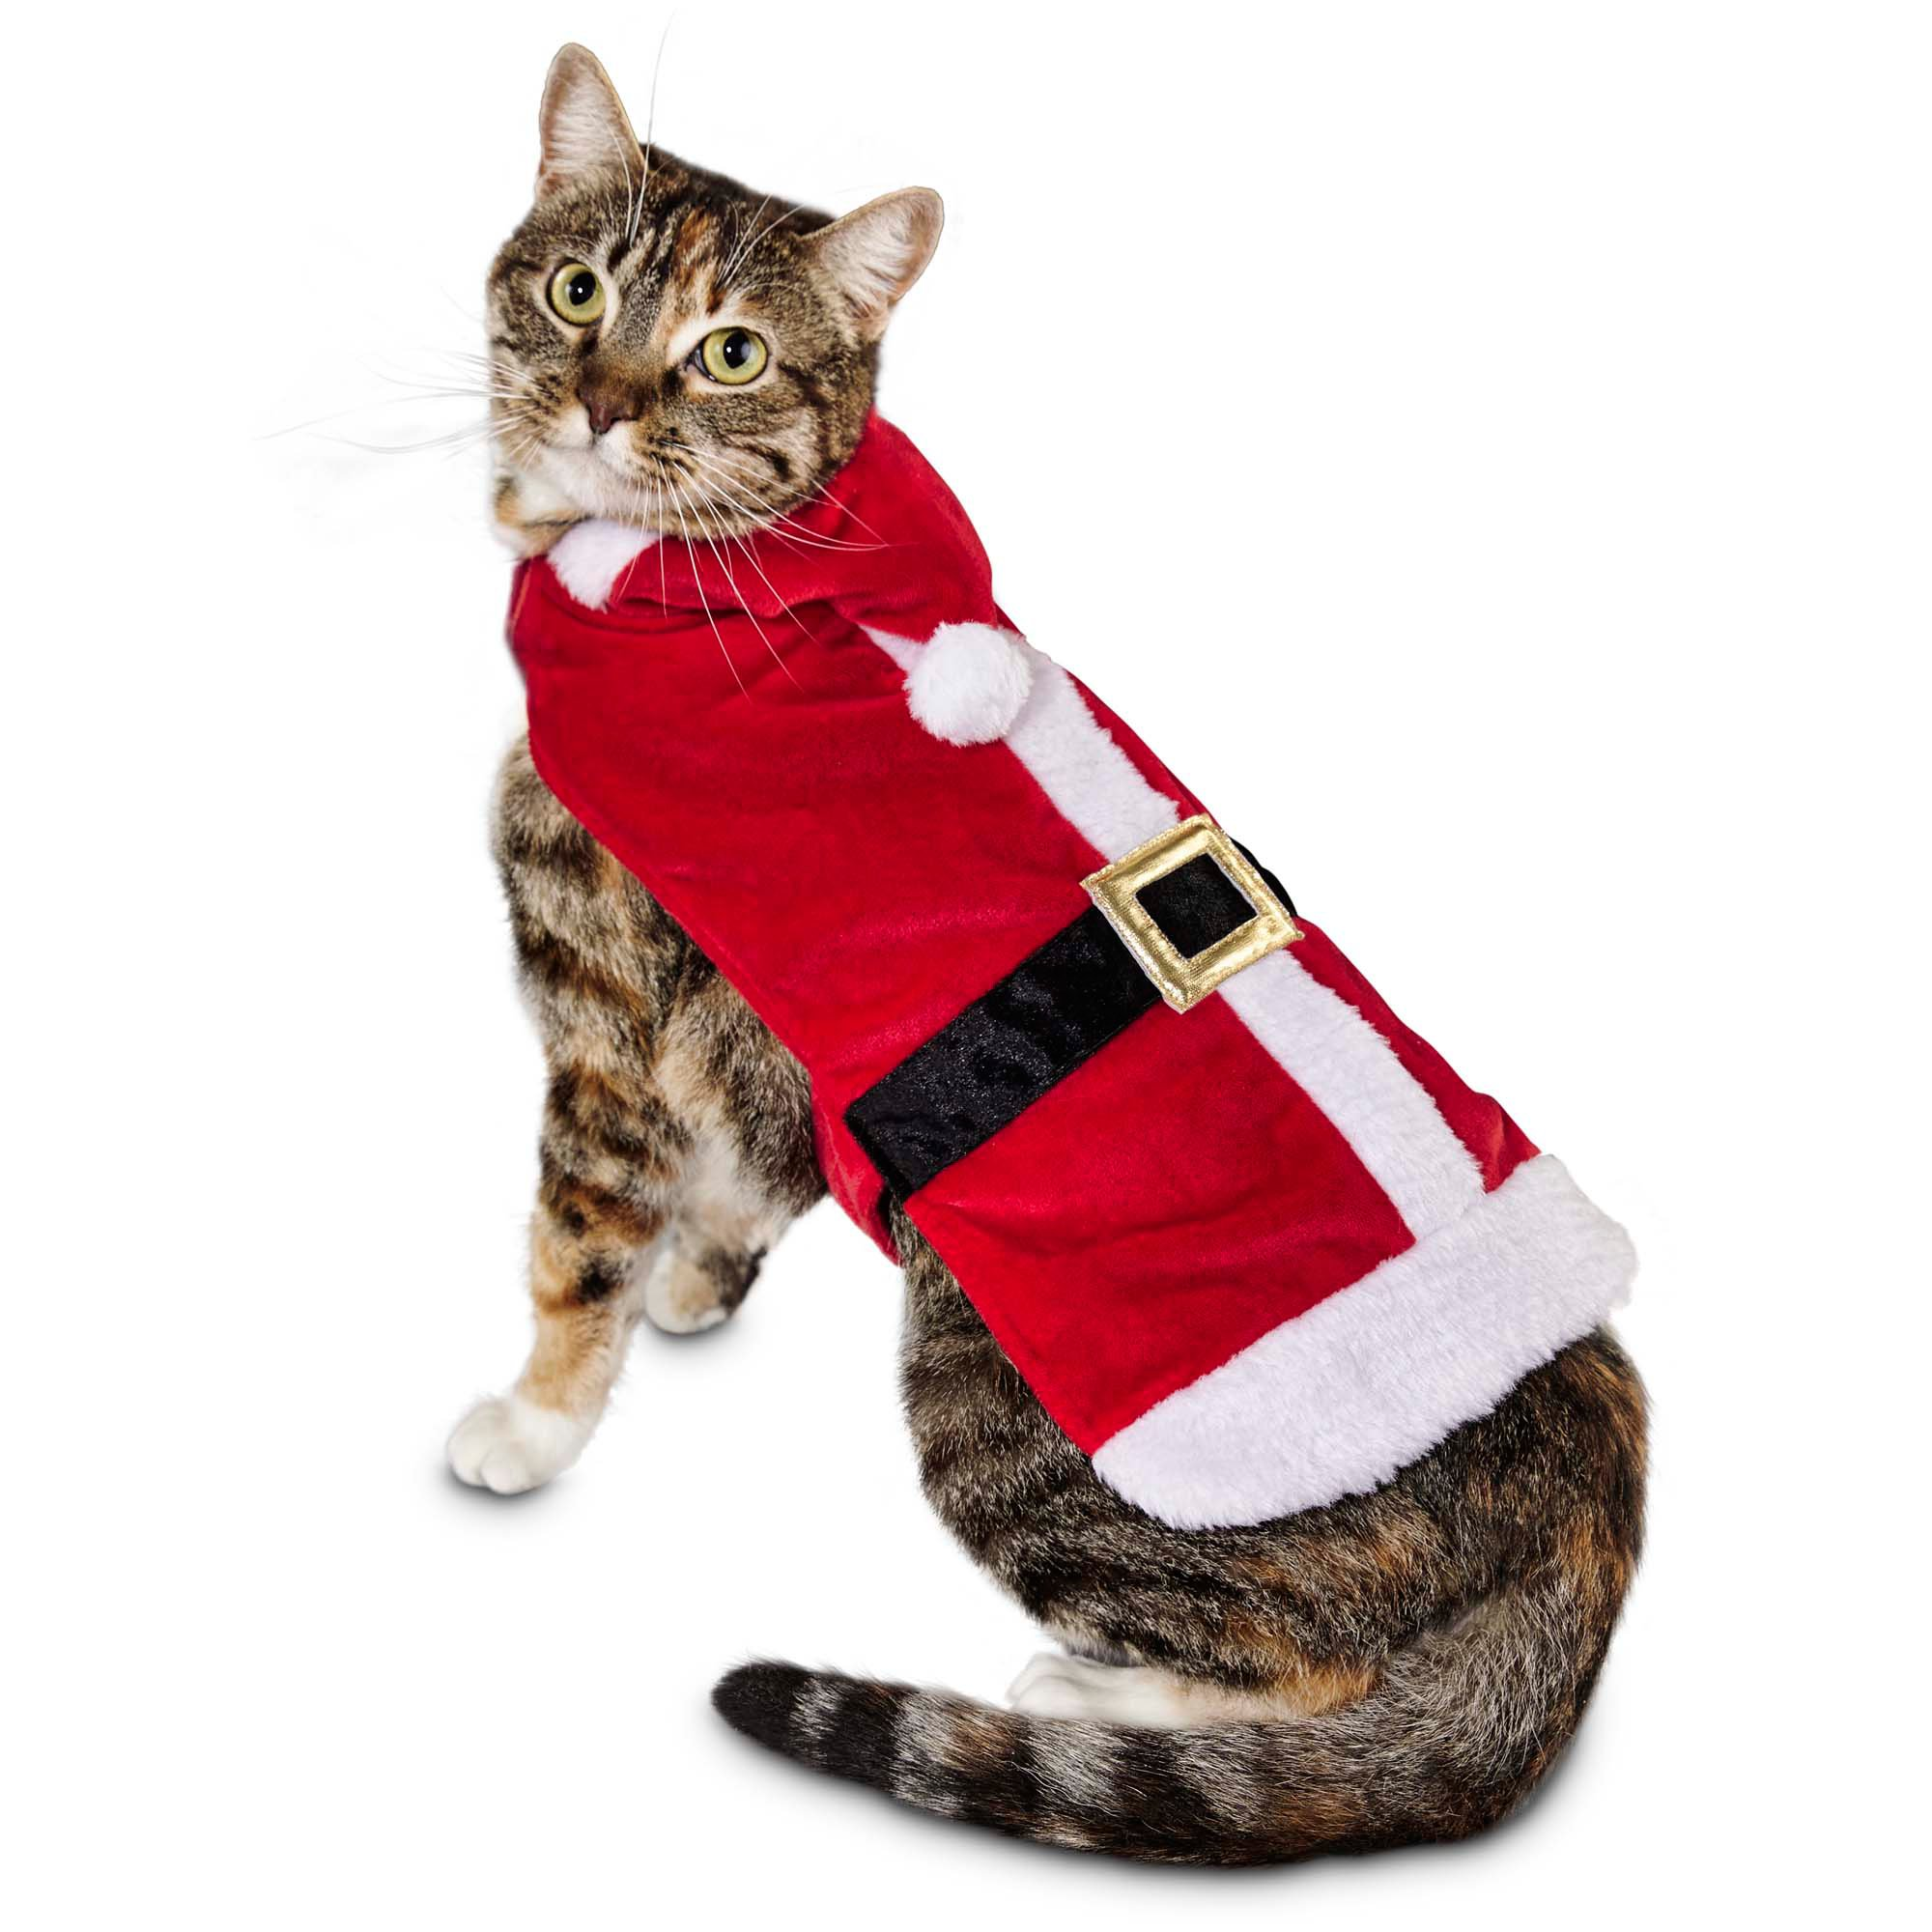 Cat Clothes Apparel & Outfits Clothes for Cats